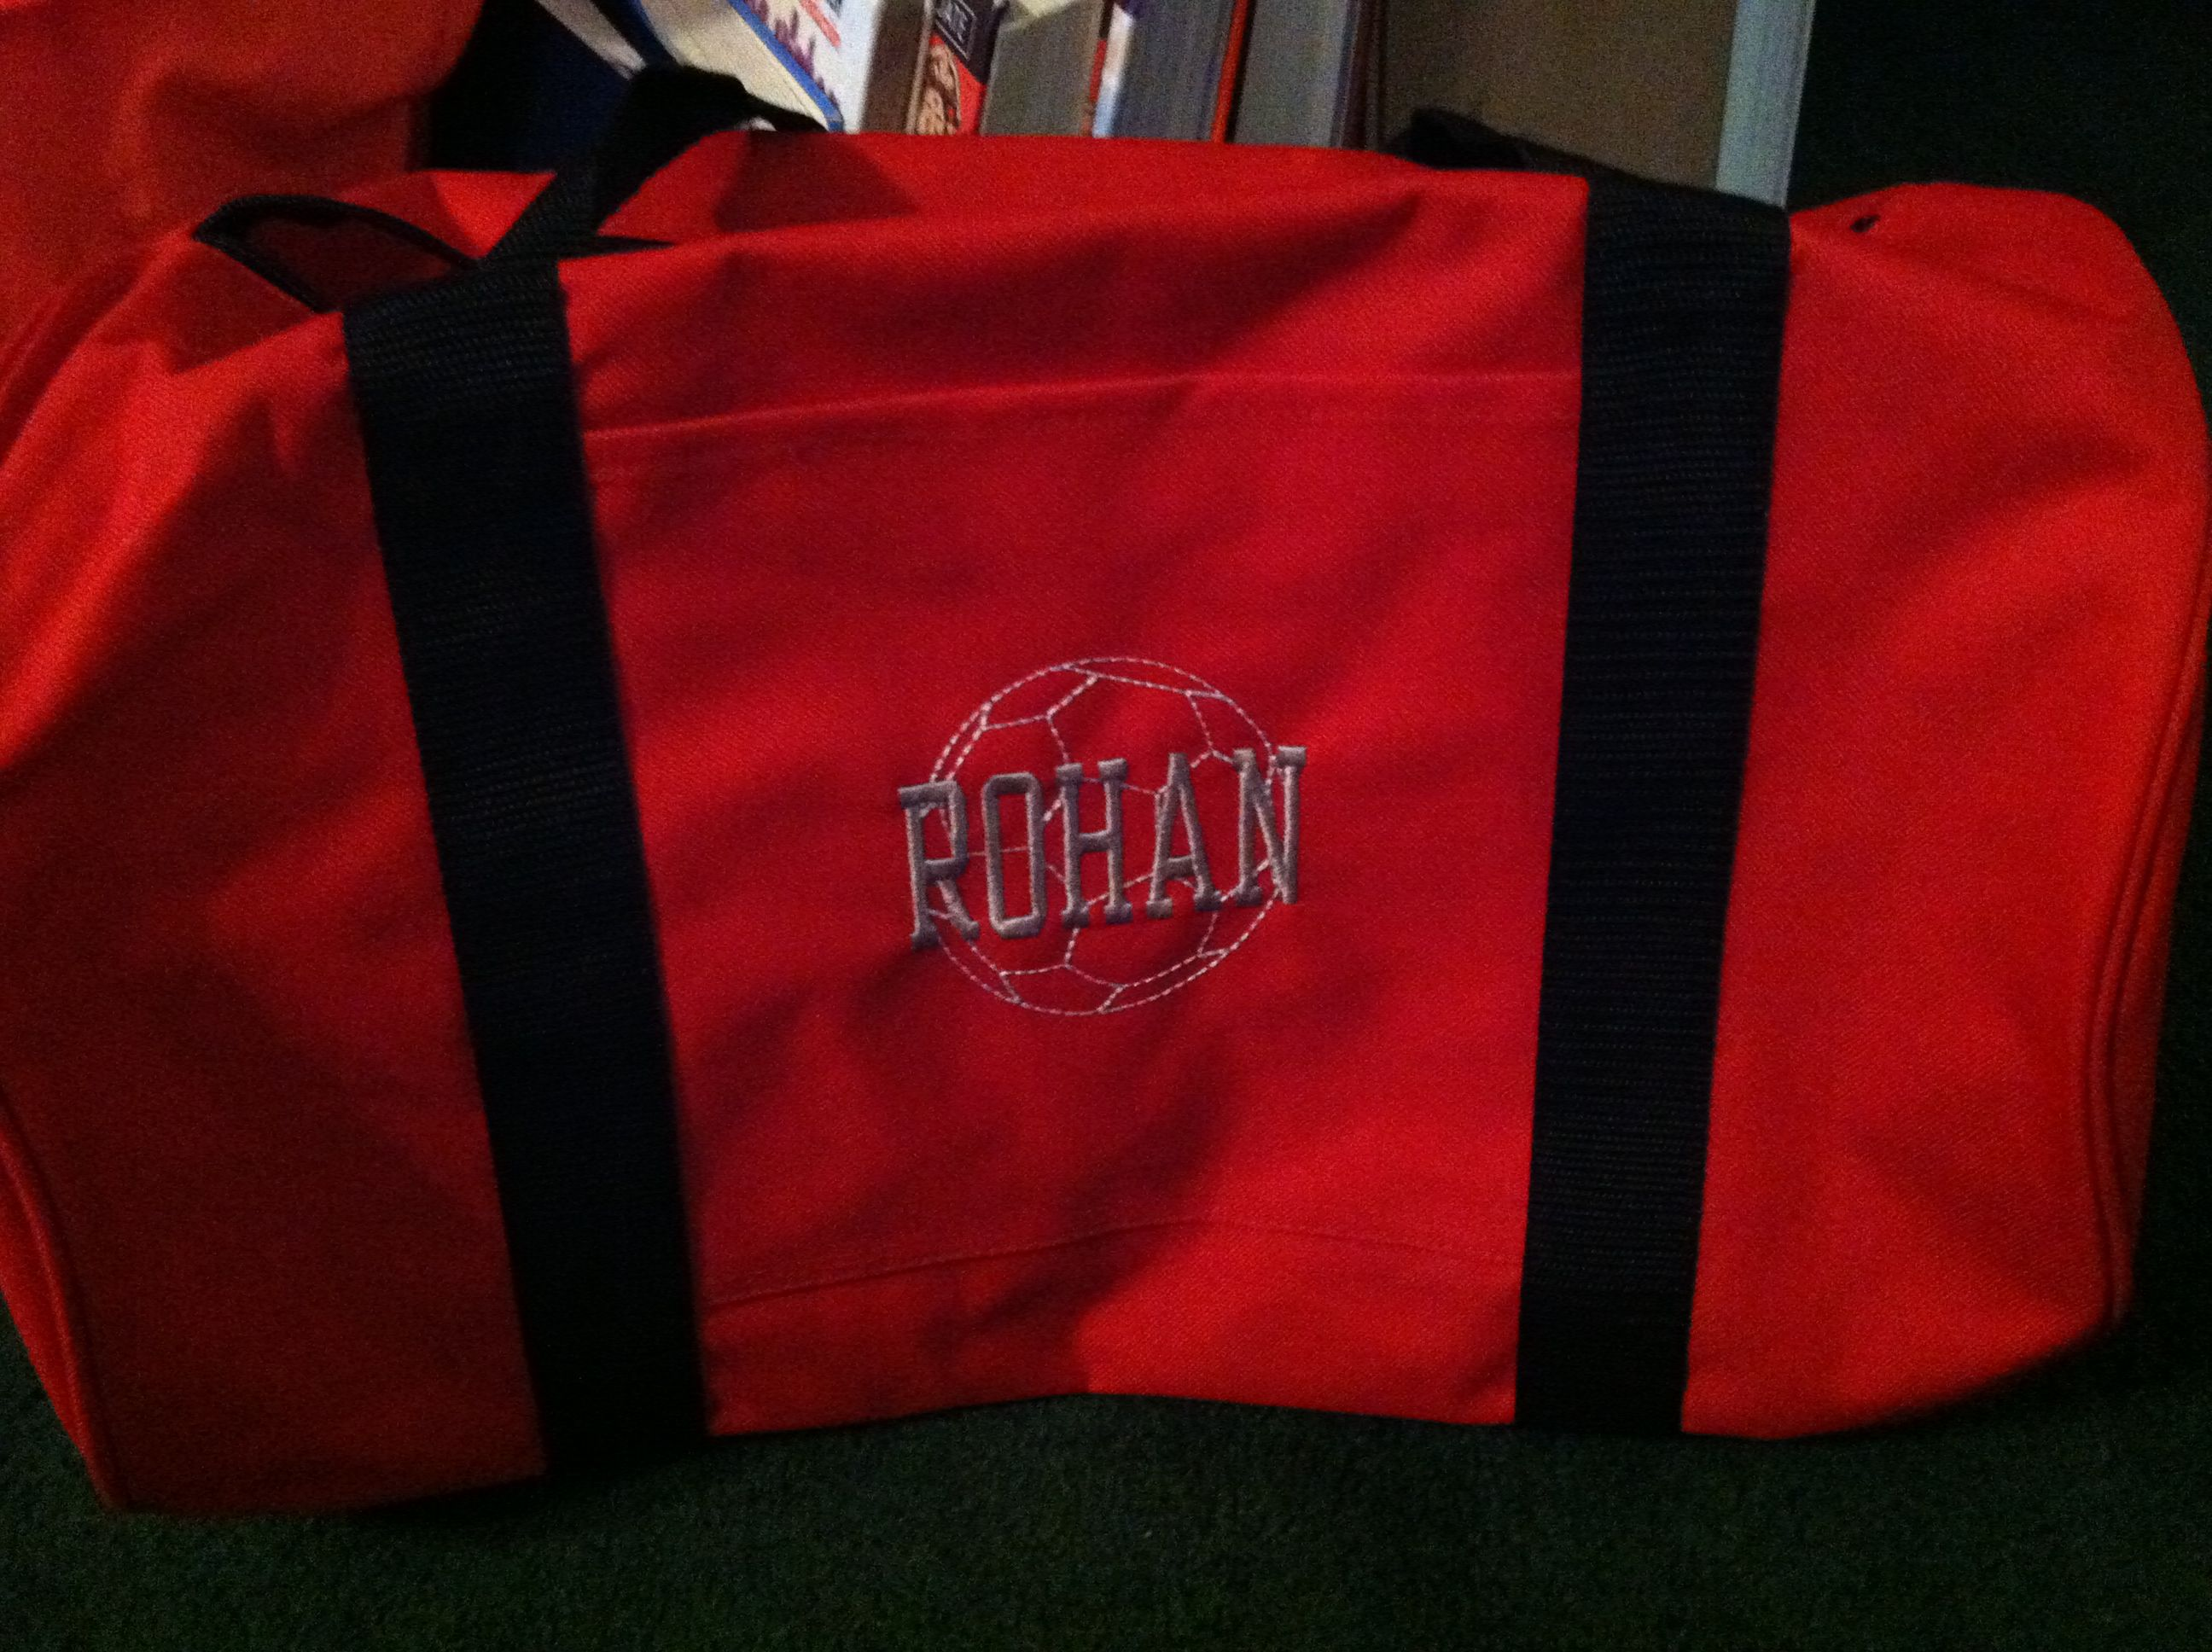 Early Christmas present for my nephew, new soccer bag.